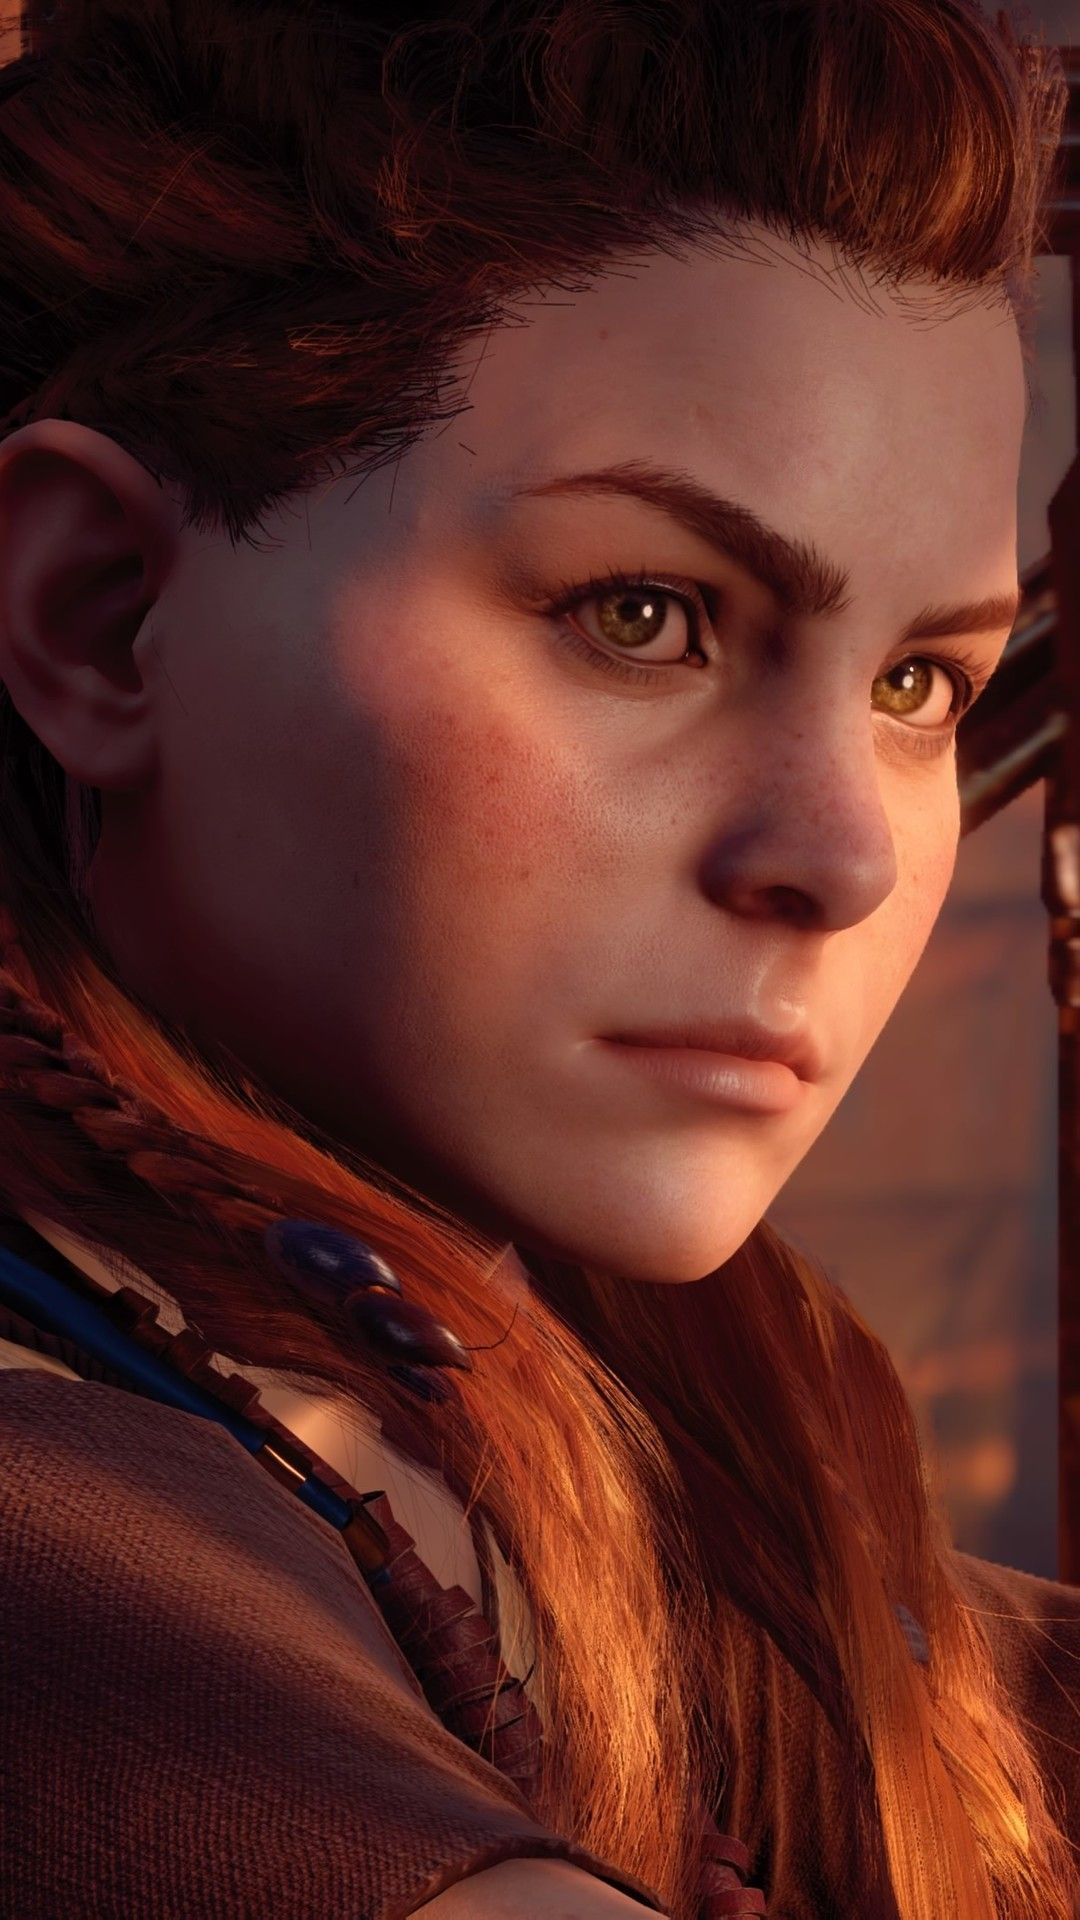 Best Of Wallpapers For Andriod And Ios Great Best Of Wallpapers For Cellphone Pc 4k Full Horizon Zero Dawn Wallpaper Horizon Zero Dawn Horizon Zero Dawn Aloy